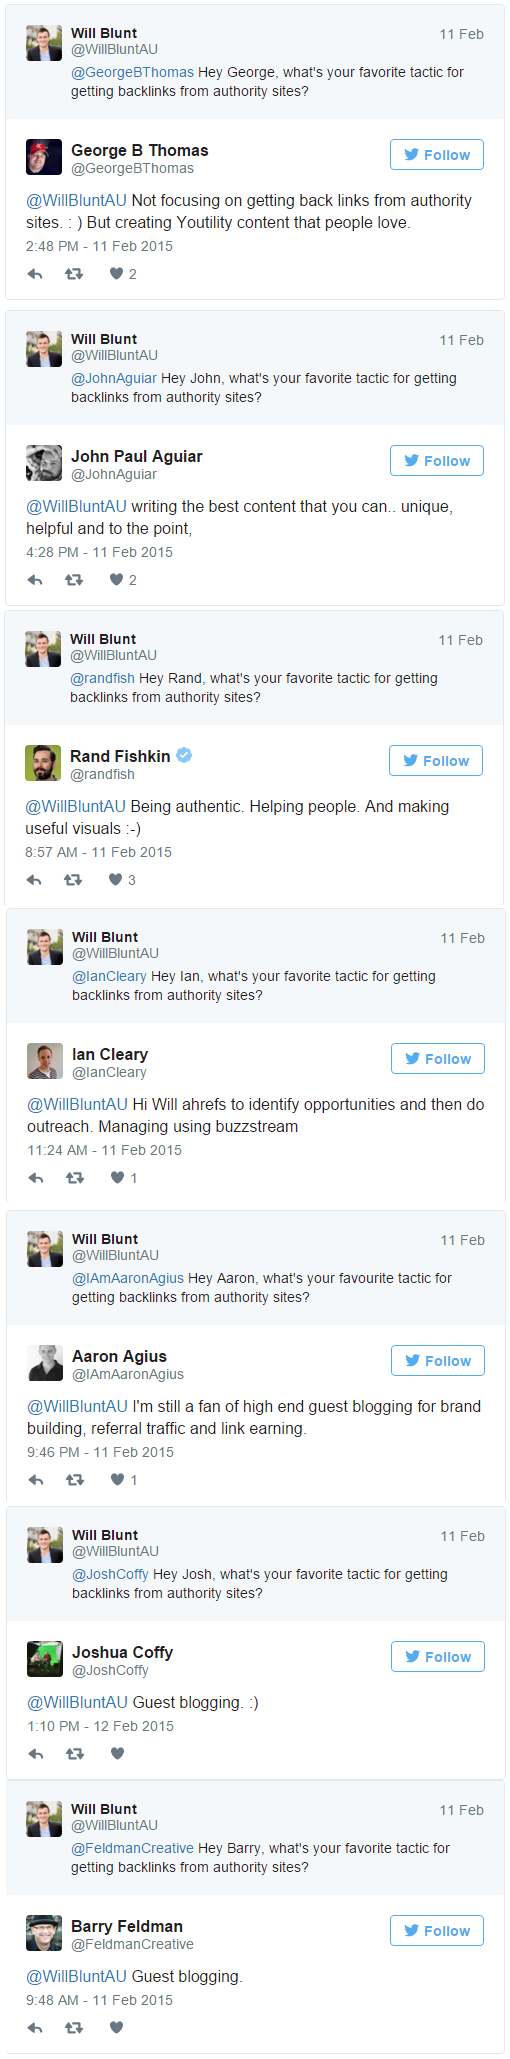 15 Ways to Get Backlinks That Won't Kill Your Search Traffic Will Blunt Twitter